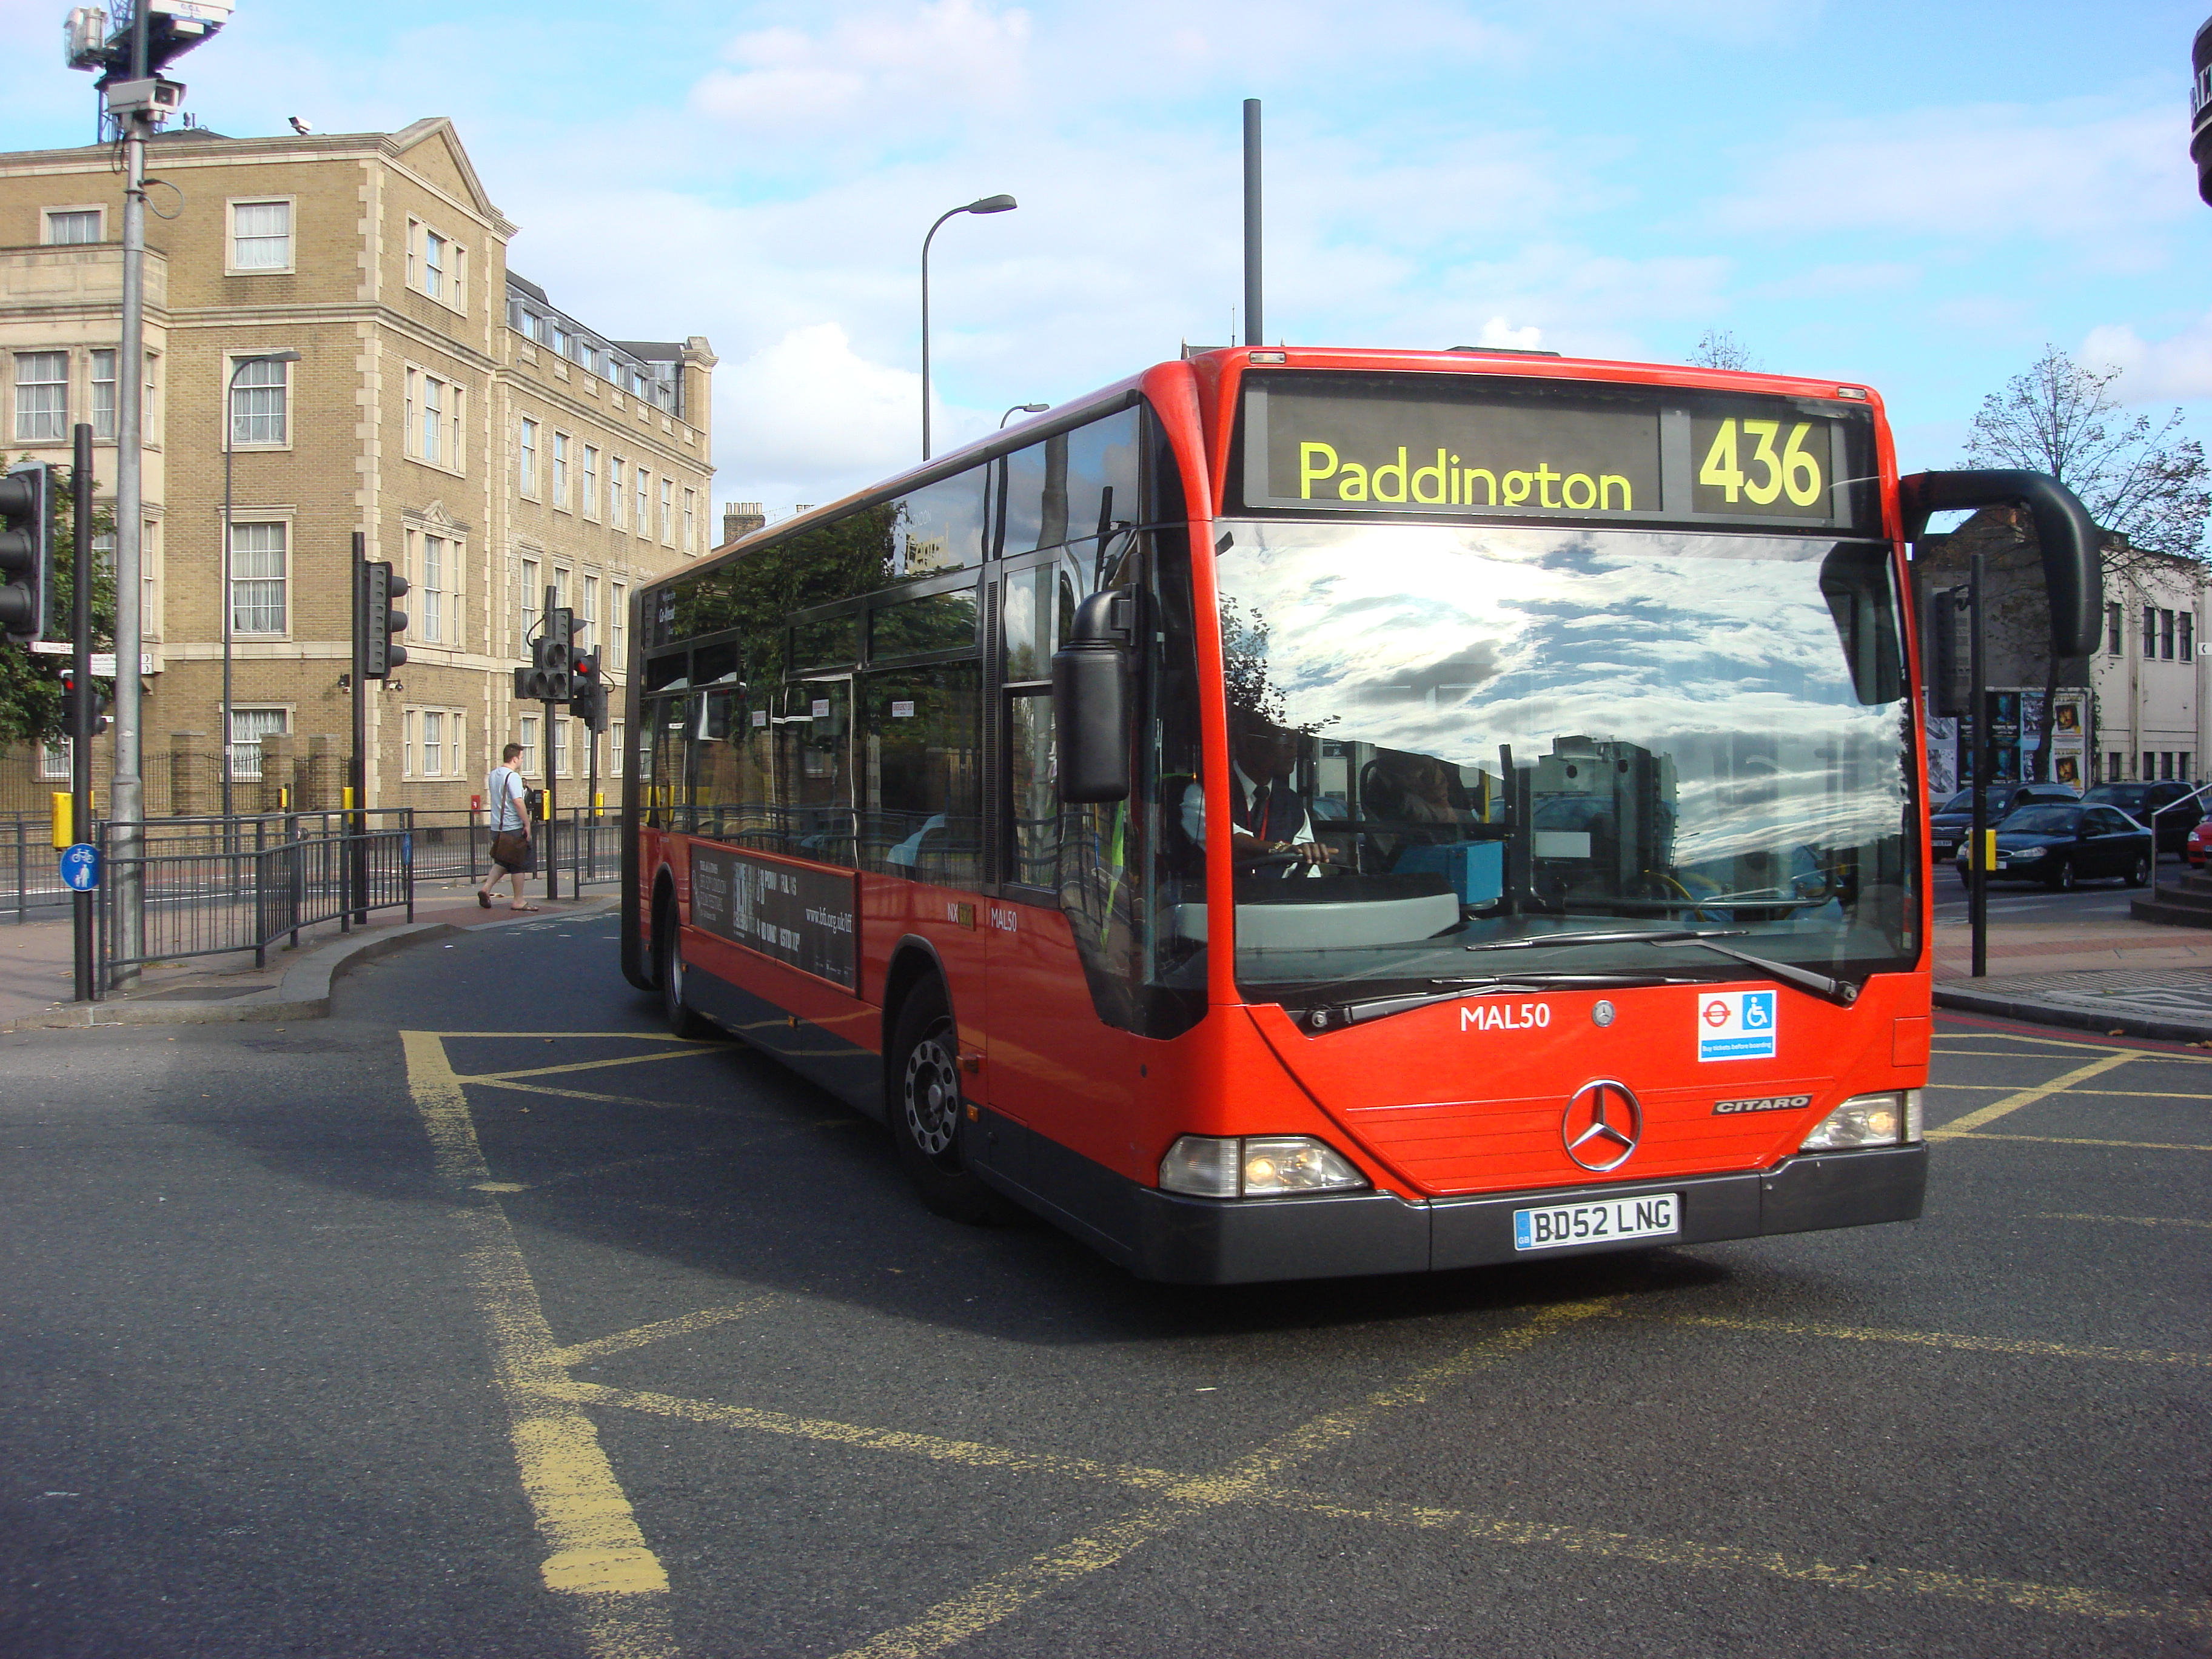 File:London Bus route 436.jpg